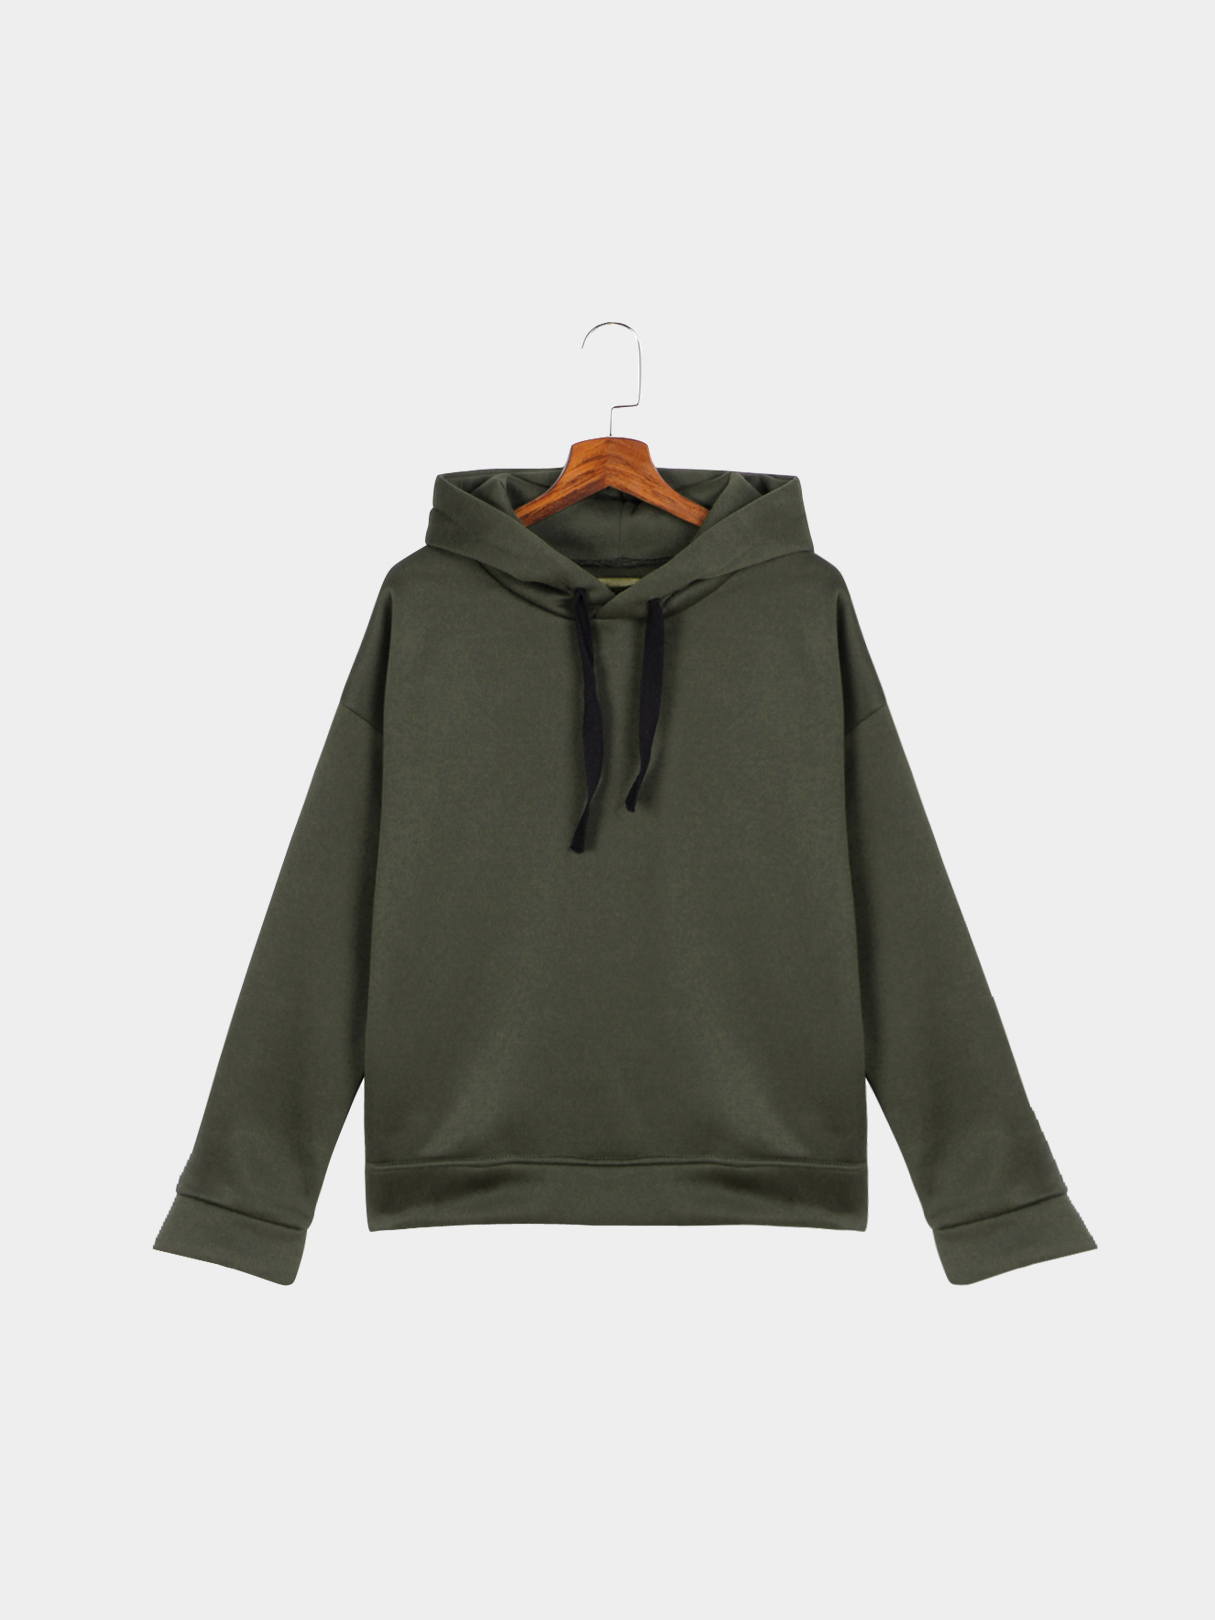 Army Green Strappy Front Split Zipper Hooded Sweatshirt grey layered contrast color hooded strappy front sweatshirt